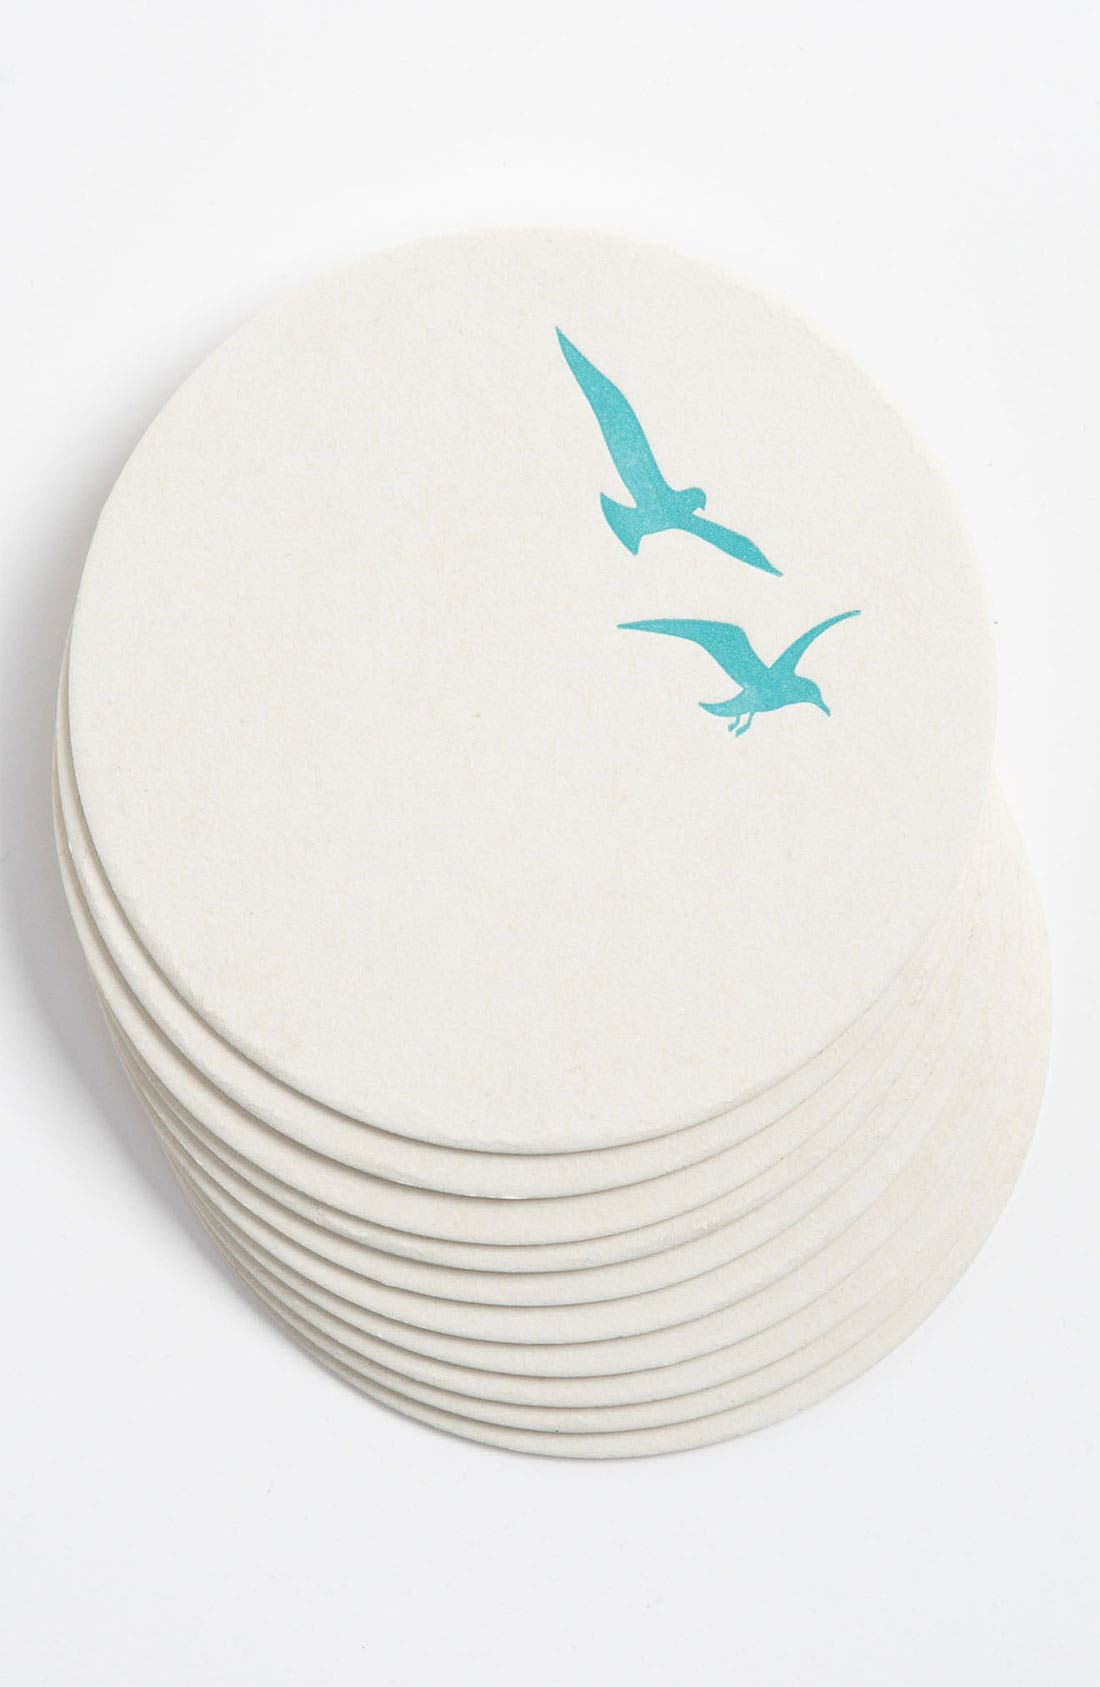 Alternate Image 1 Selected - 'Seagulls' Letterpress Coasters (Set of 10)